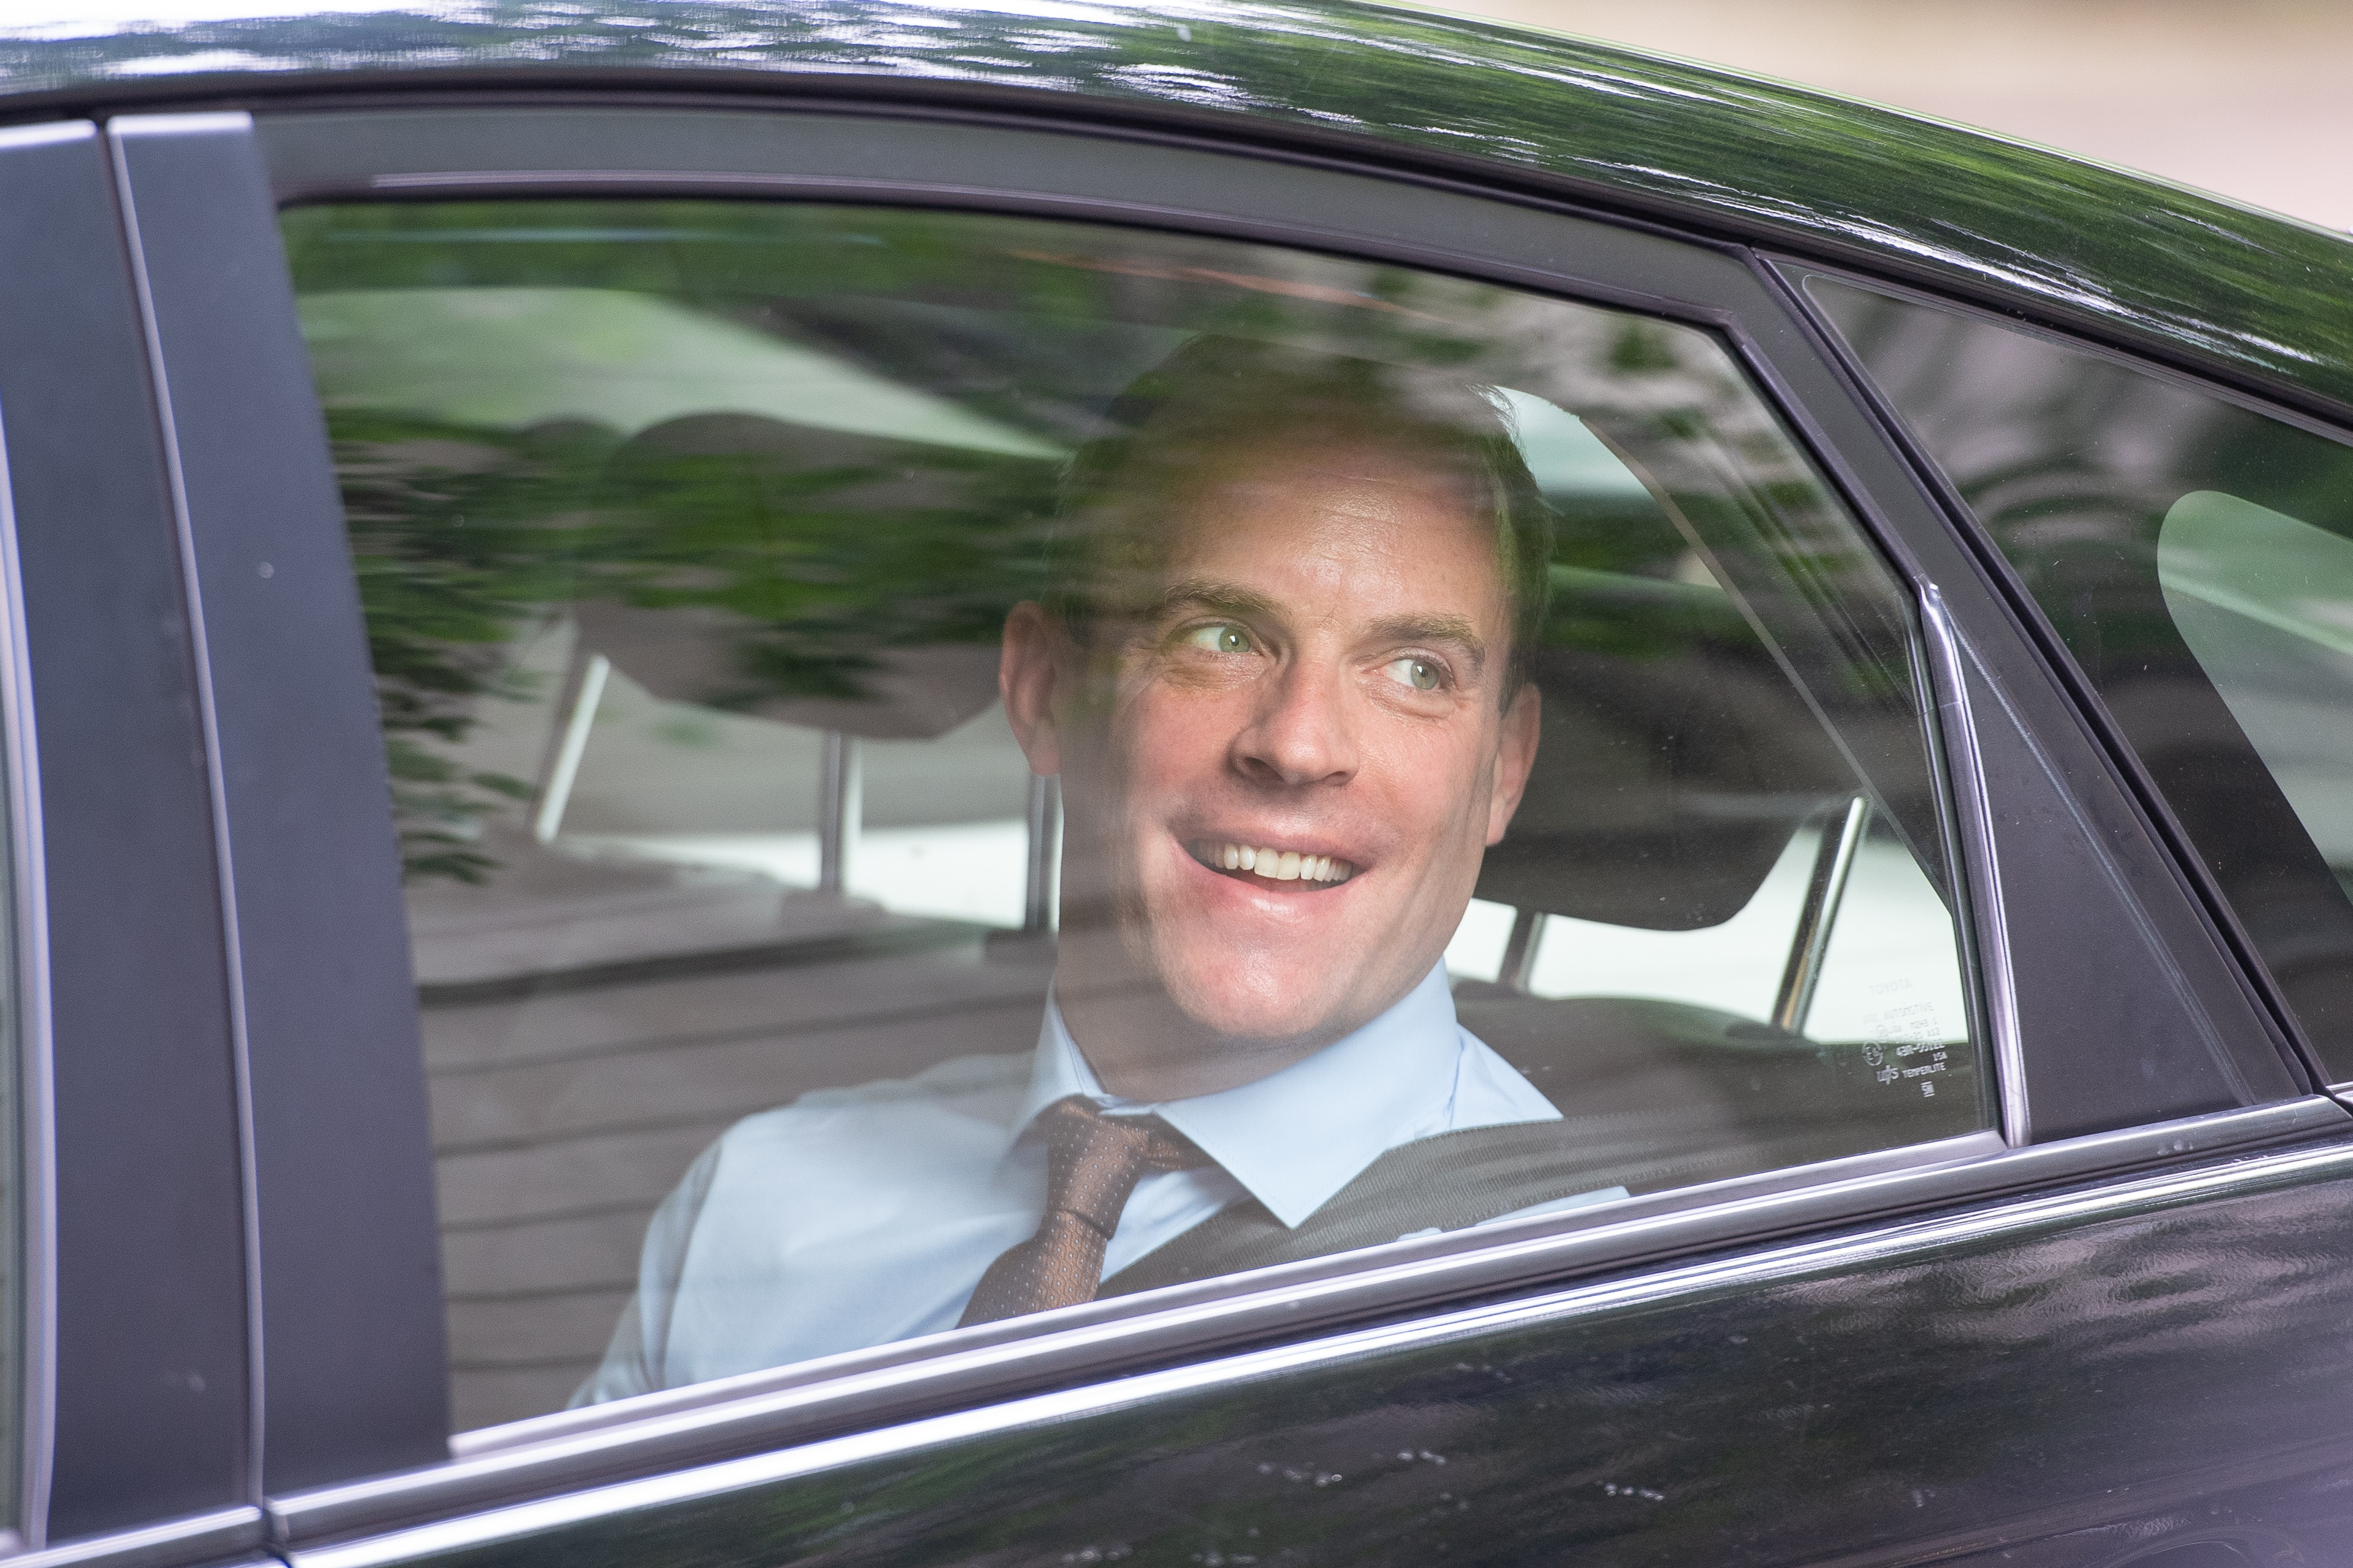 Former Conservative party leadership candidate Dominic Raab in Westminster, London.. Picture date: Wednesday June 19, 2019. Photo credit should read: Dominic Lipinski/PA Wire